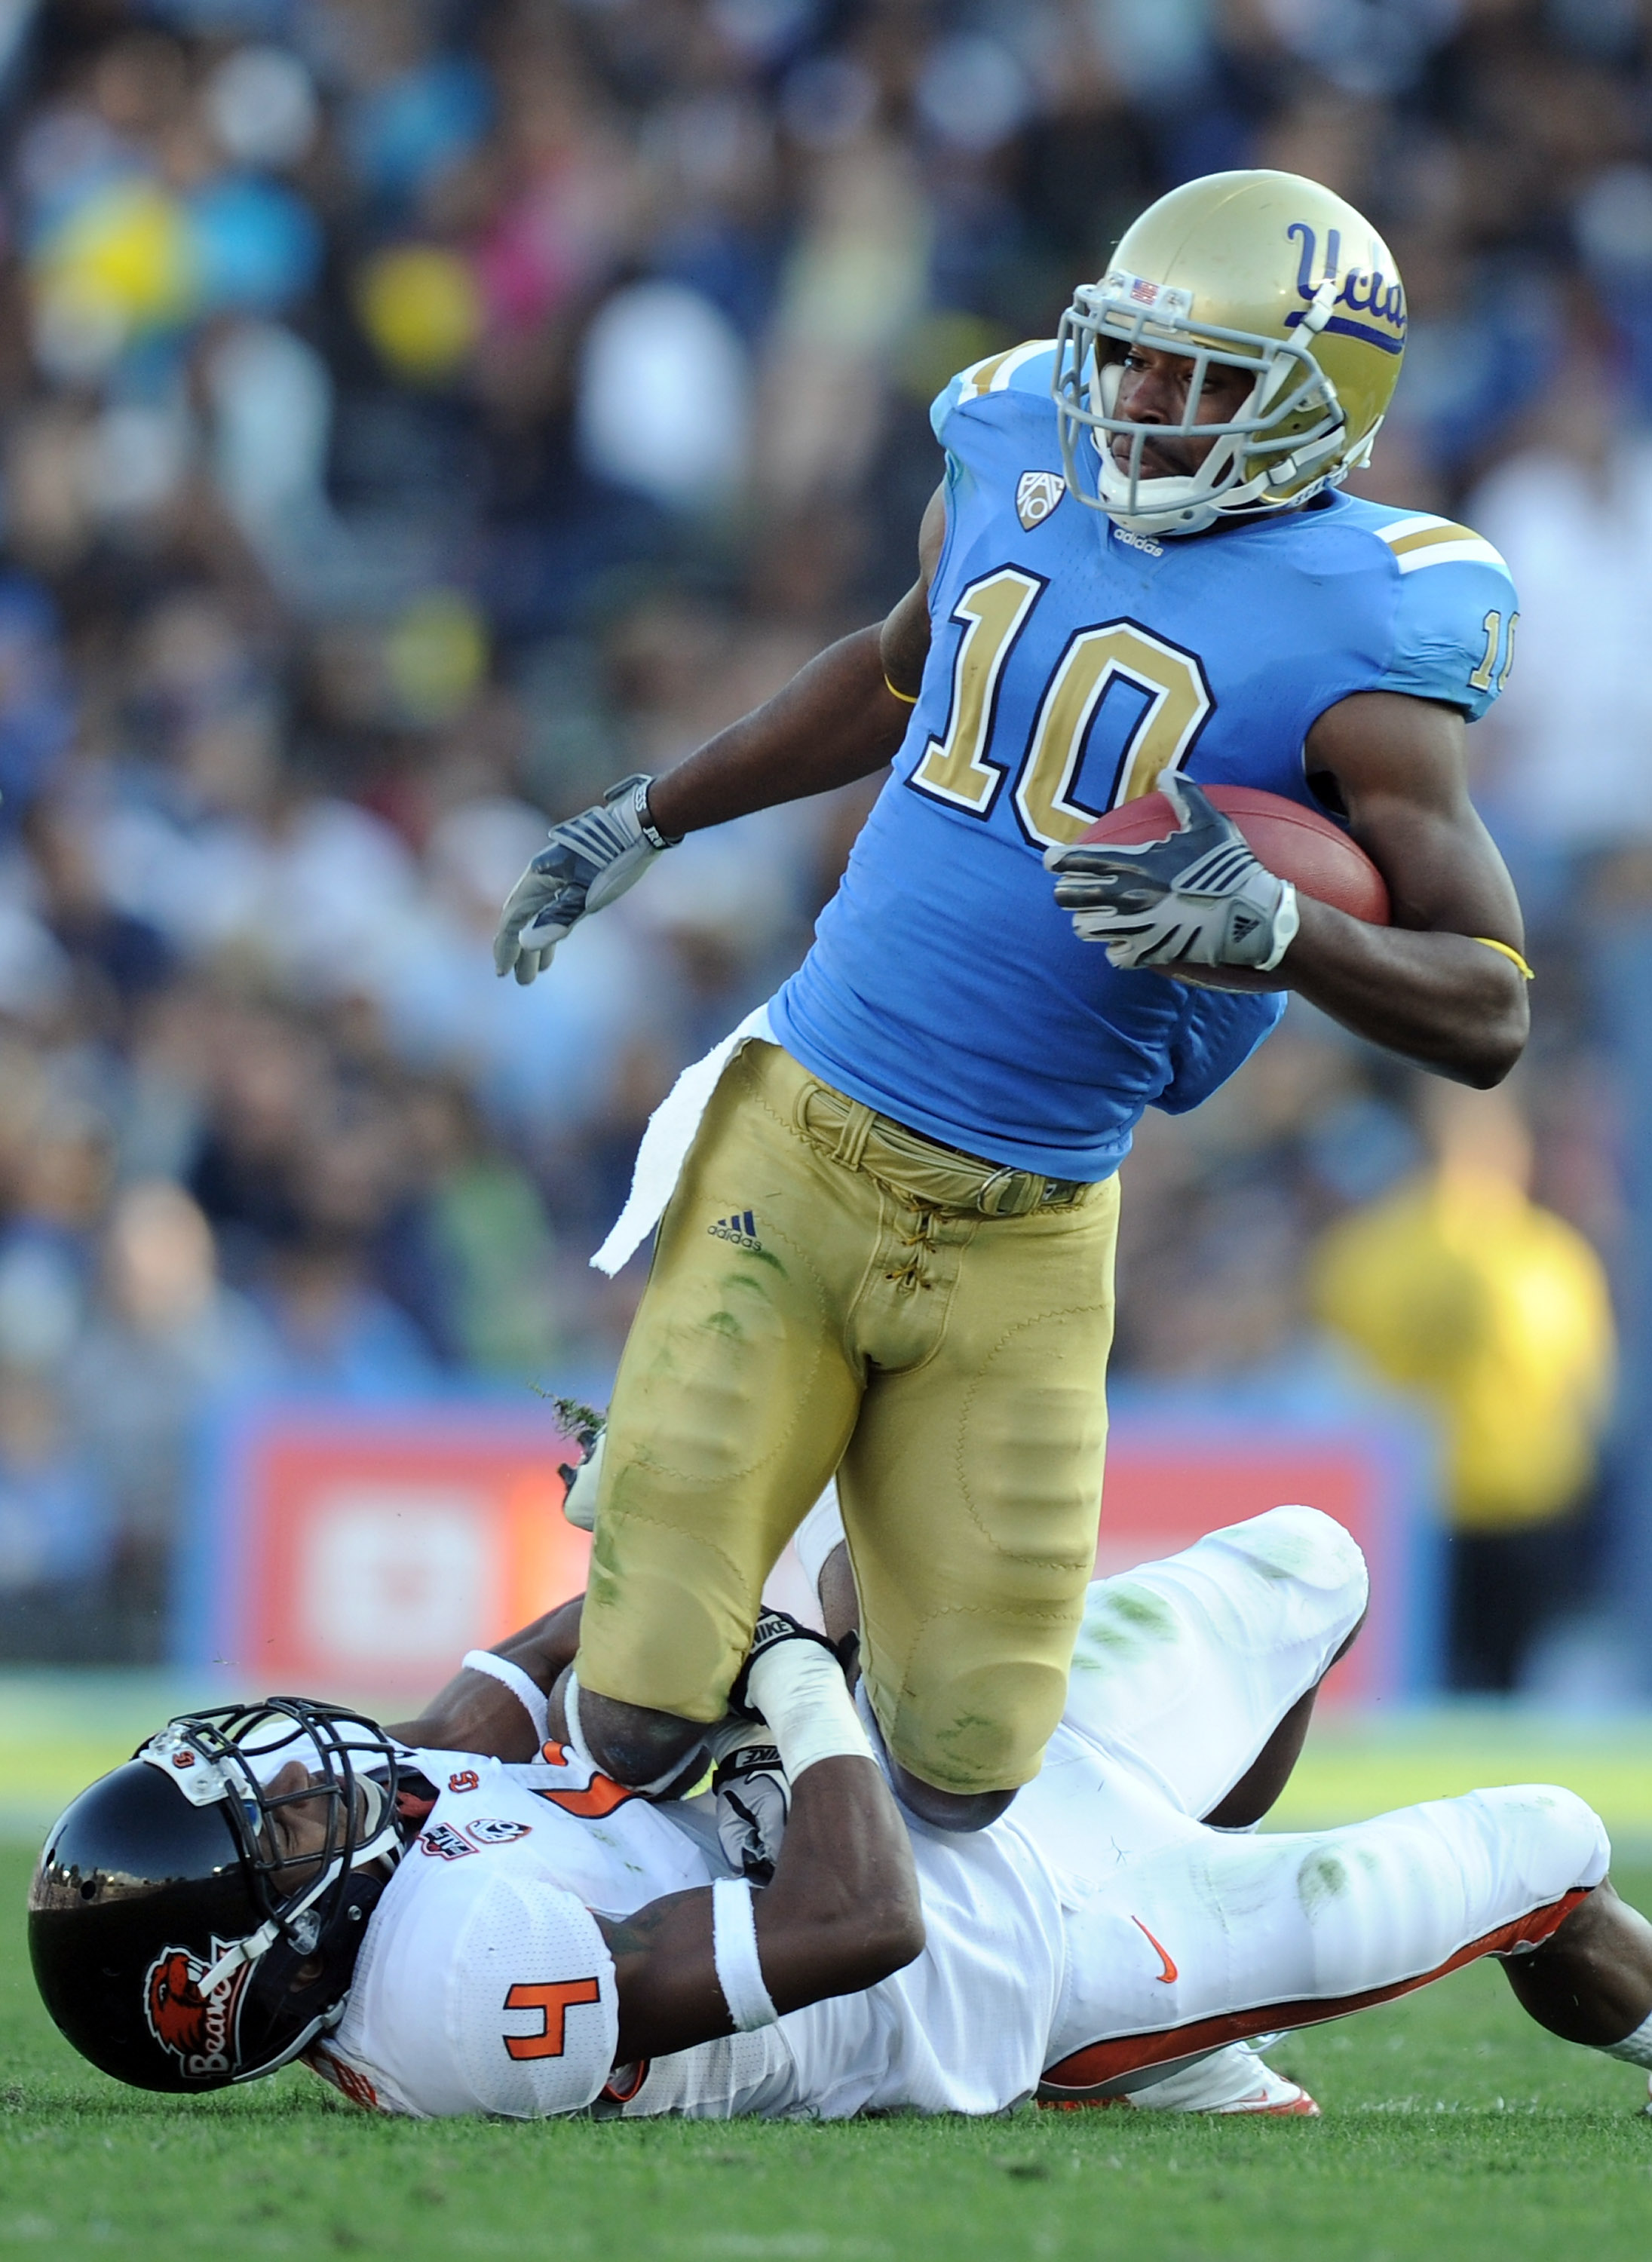 PASADENA, CA - NOVEMBER 06:  Akeem Ayers #10 of the UCLA Bruins attempts to break free from James Dockery #4 of the Oregon State Beavers at the Rose Bowl on November 6, 2010 in Pasadena, California.  (Photo by Harry How/Getty Images)